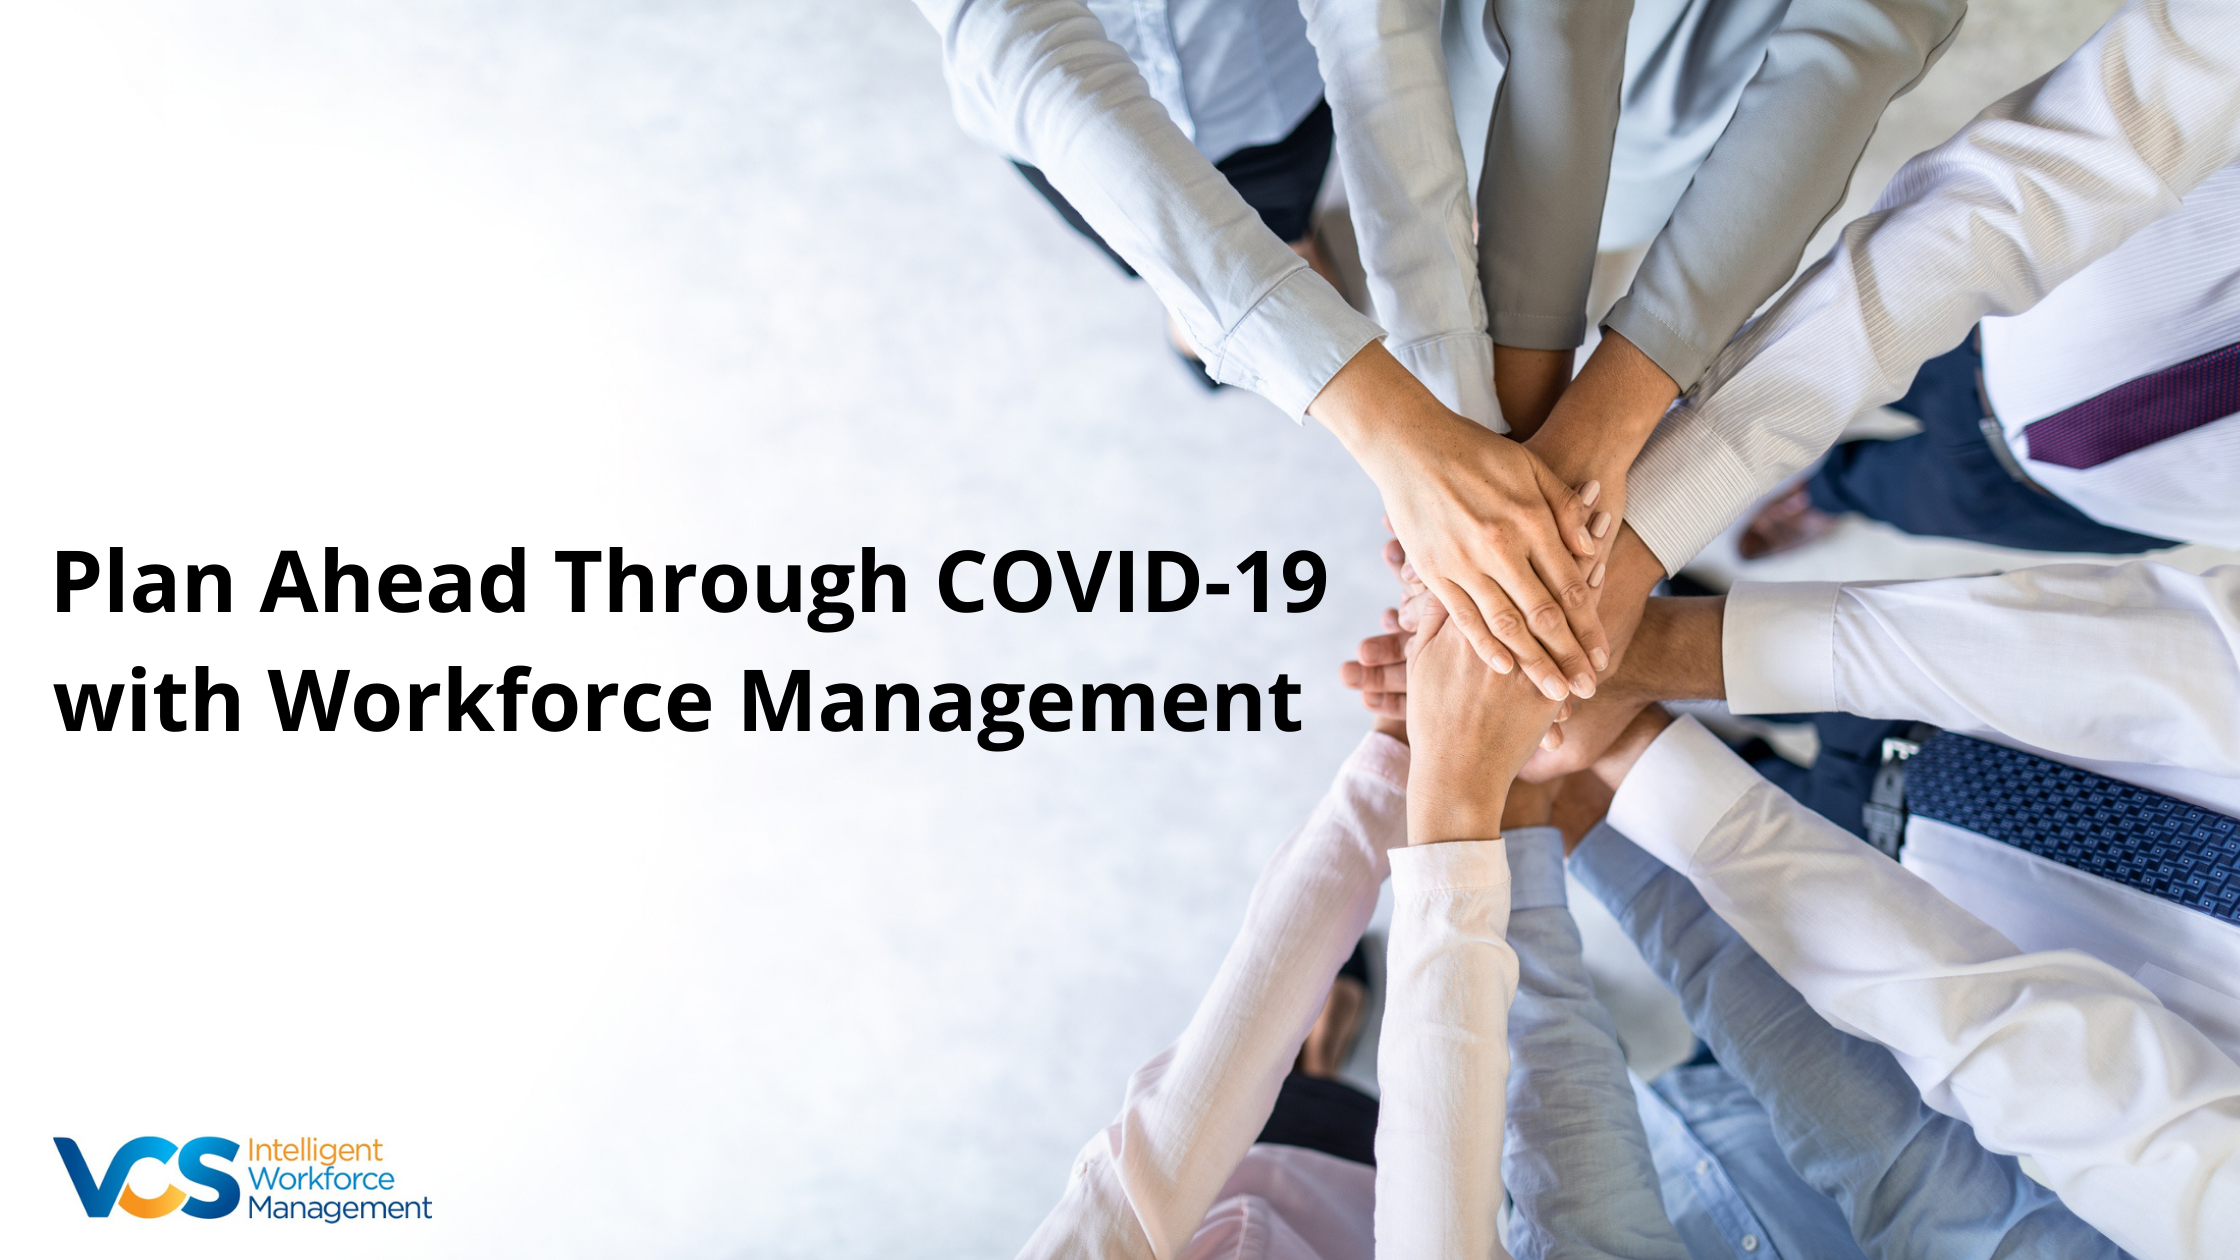 Plan Ahead Through COVID-19 with Workforce Management